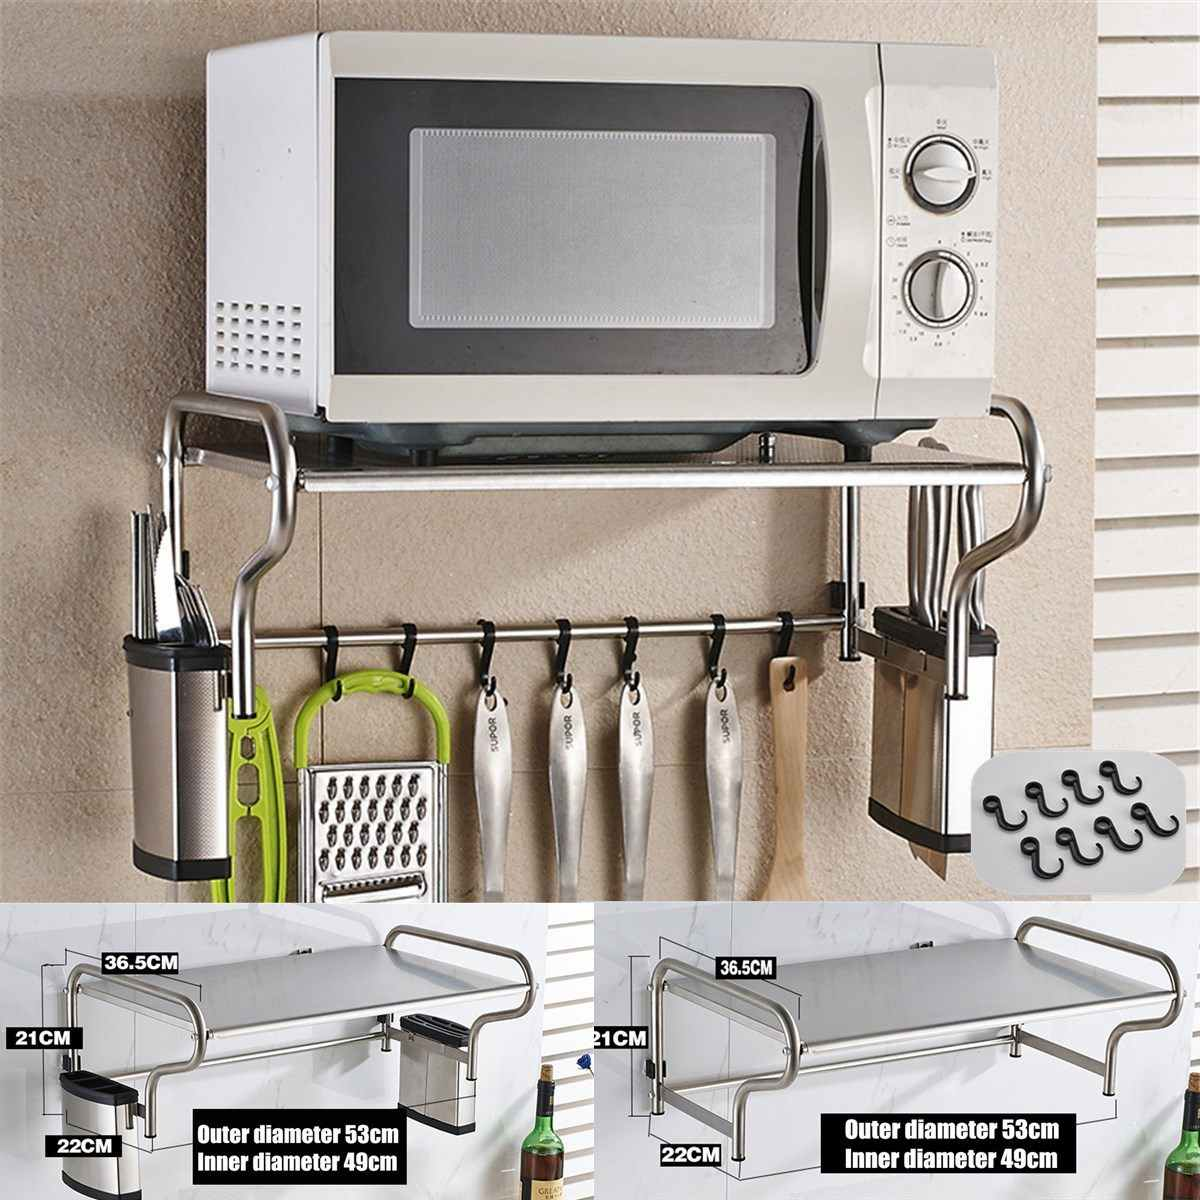 stainless steel microwave oven bracket wall mounted kitchen rack light thickened kitchen shelf microwave oven rack storage